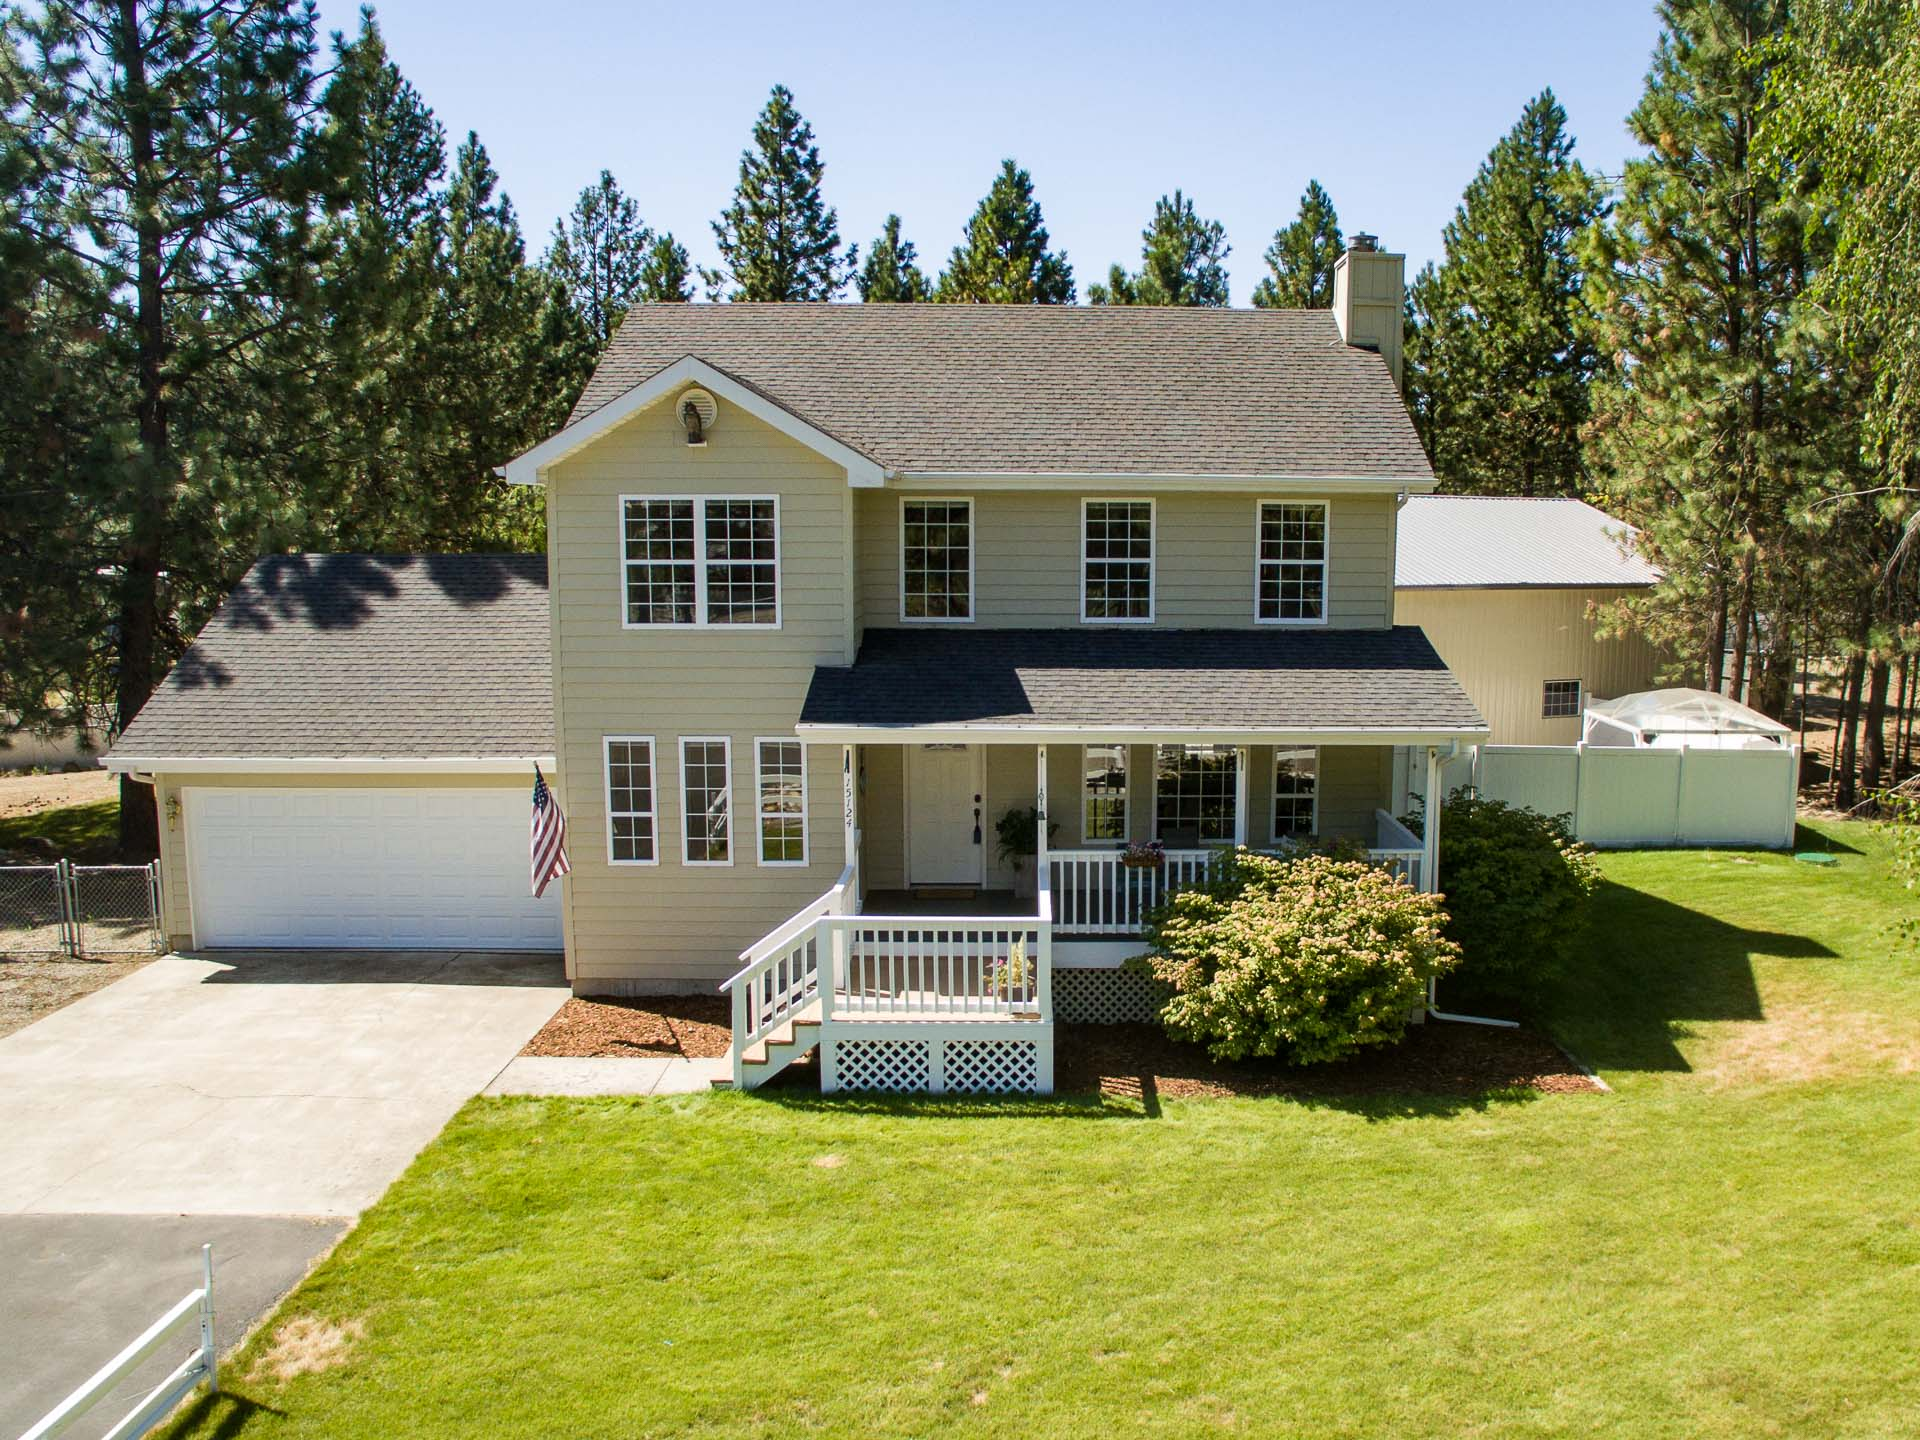 spokane drone photography for real estate